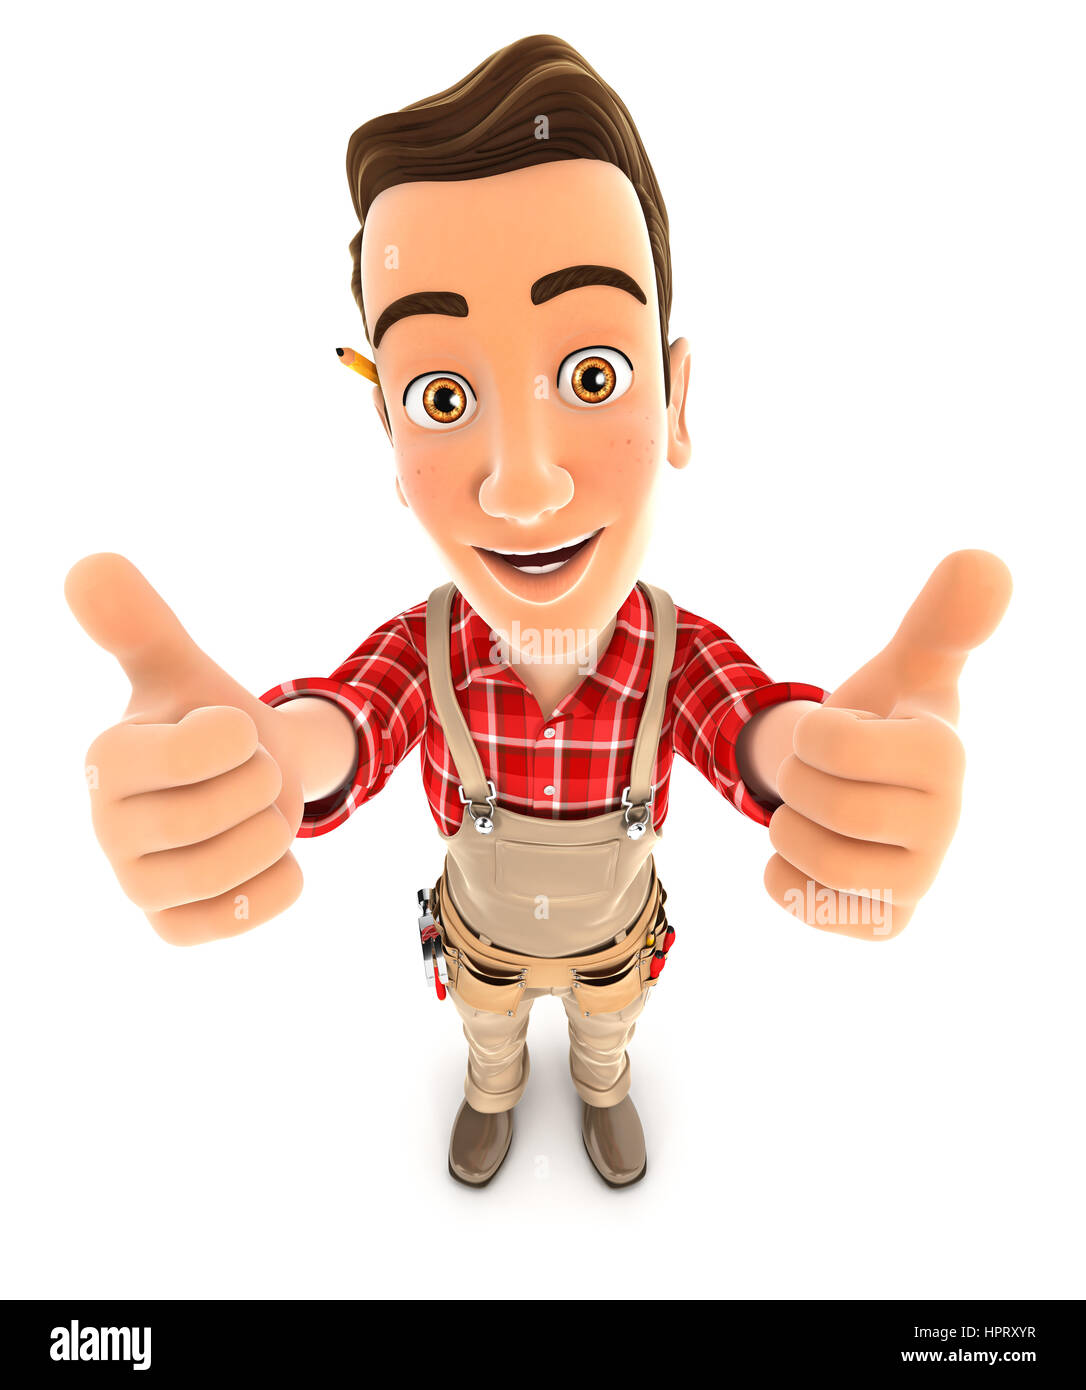 3d handyman thumbs up, illustration with isolated white background Stock Photo